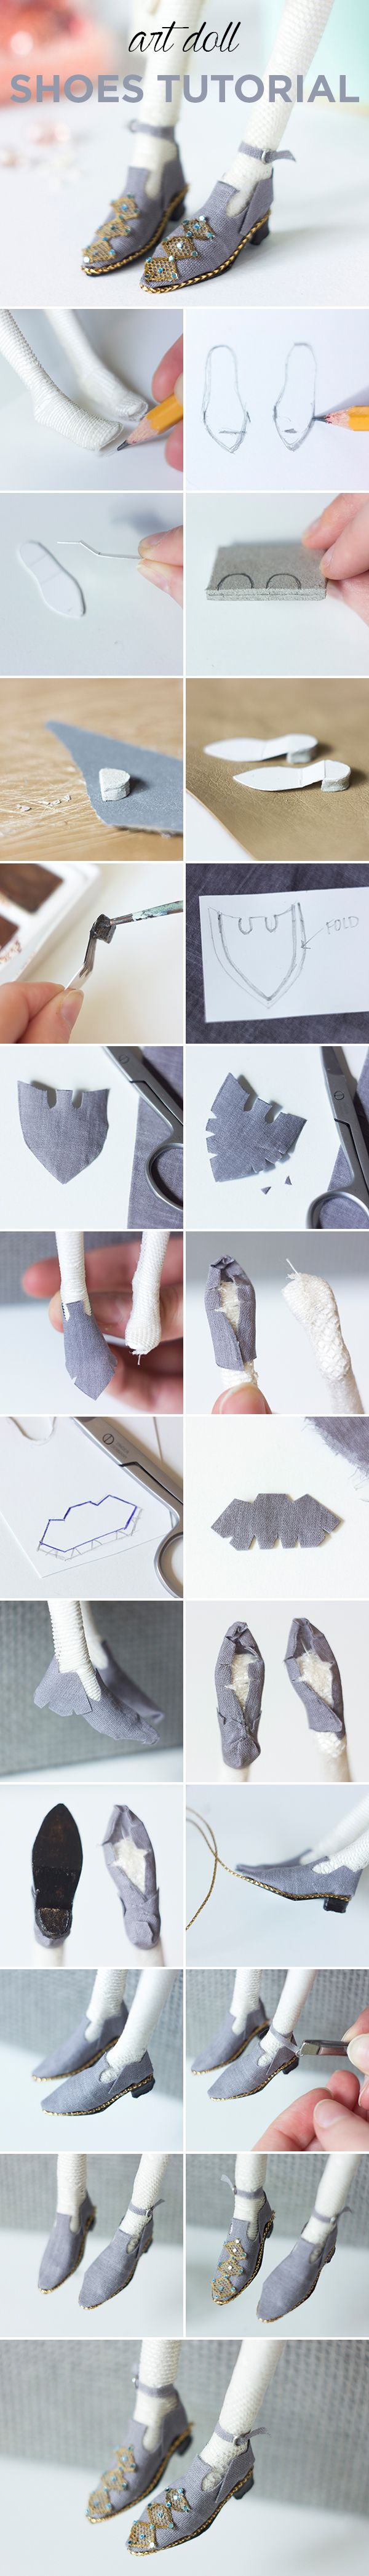 Miniature art doll shoes tutorial #dollmaking